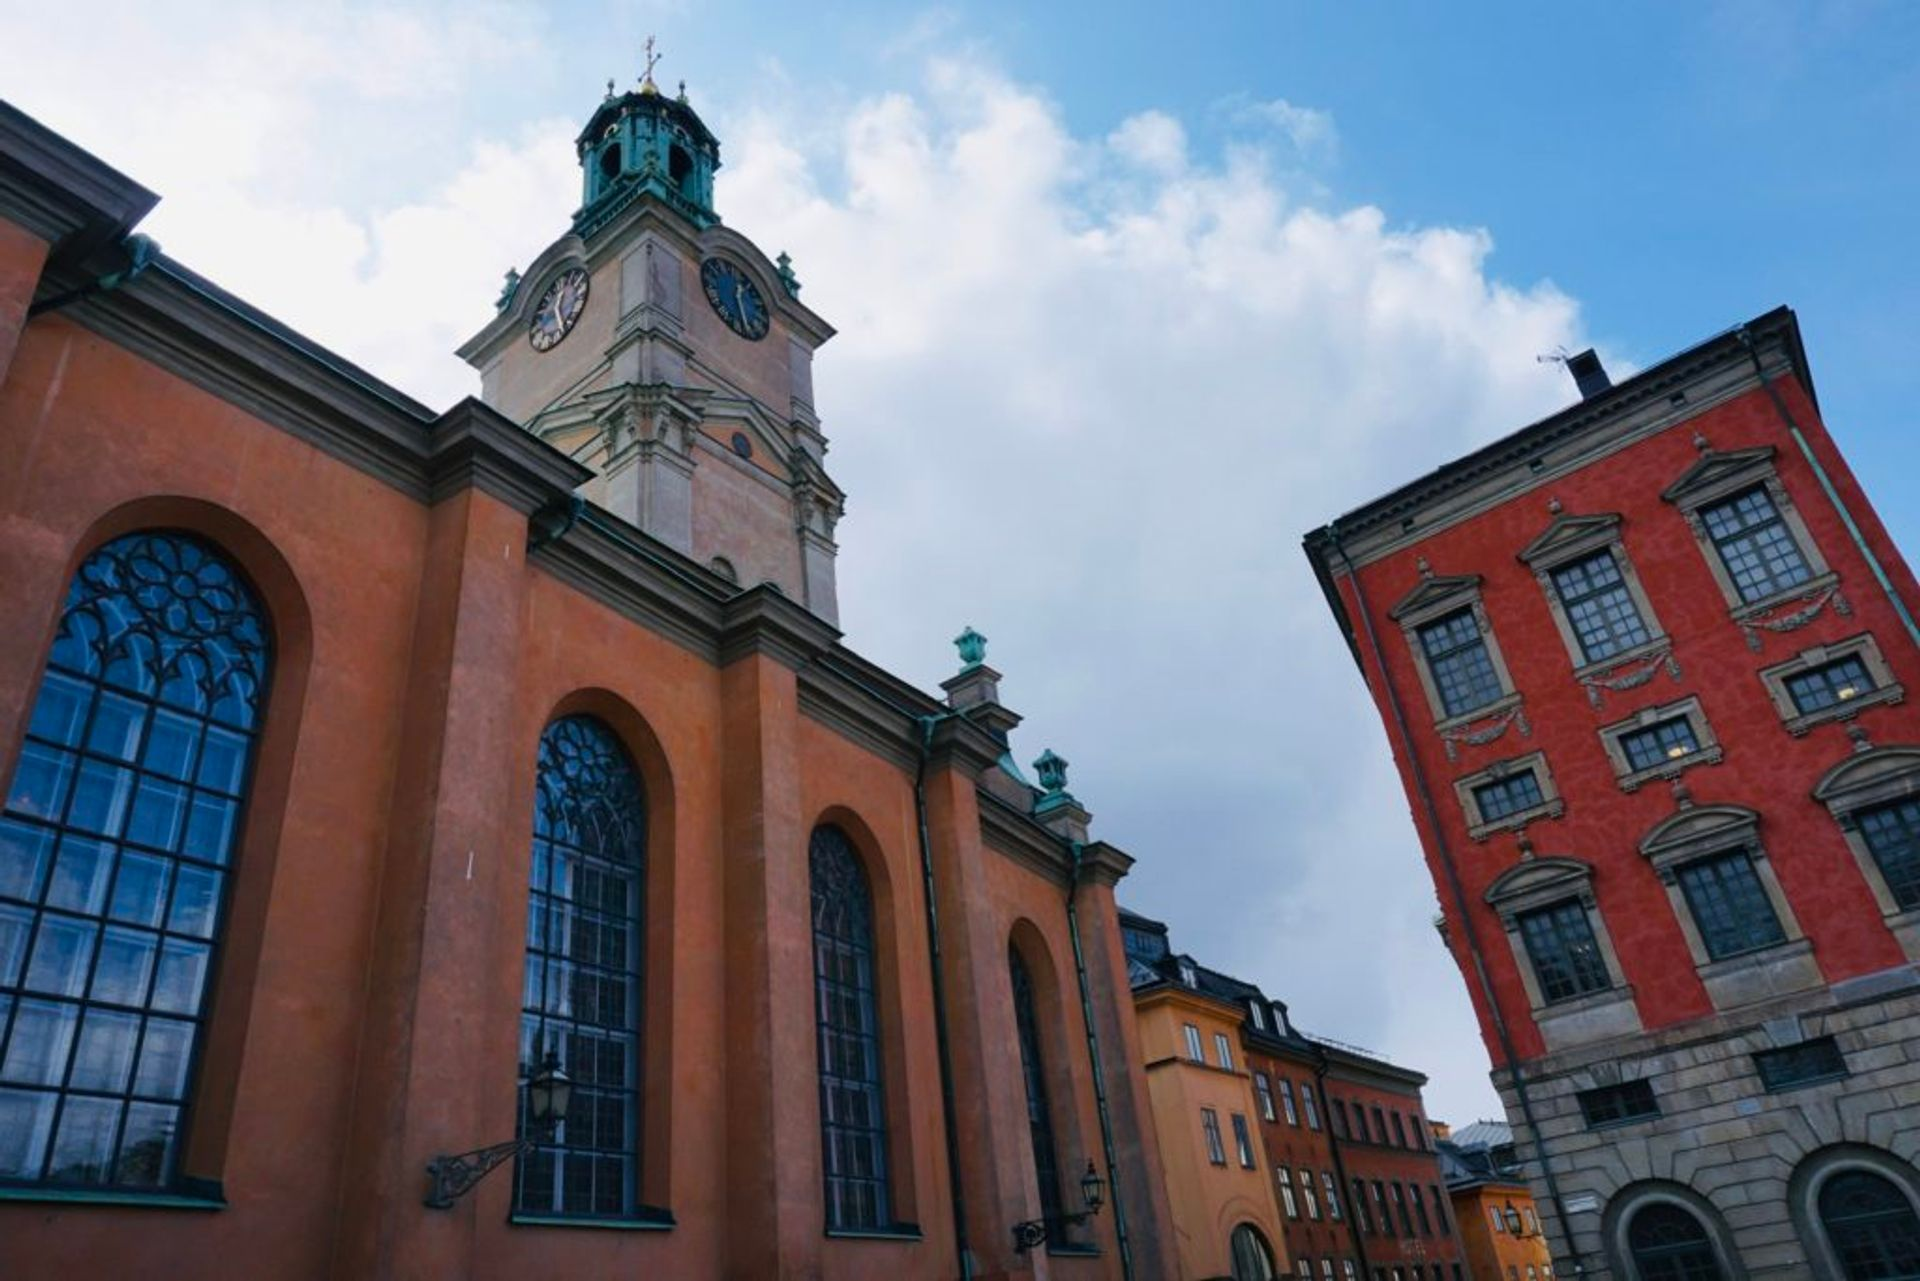 A large, colourful church in Stockholm's Old Town.